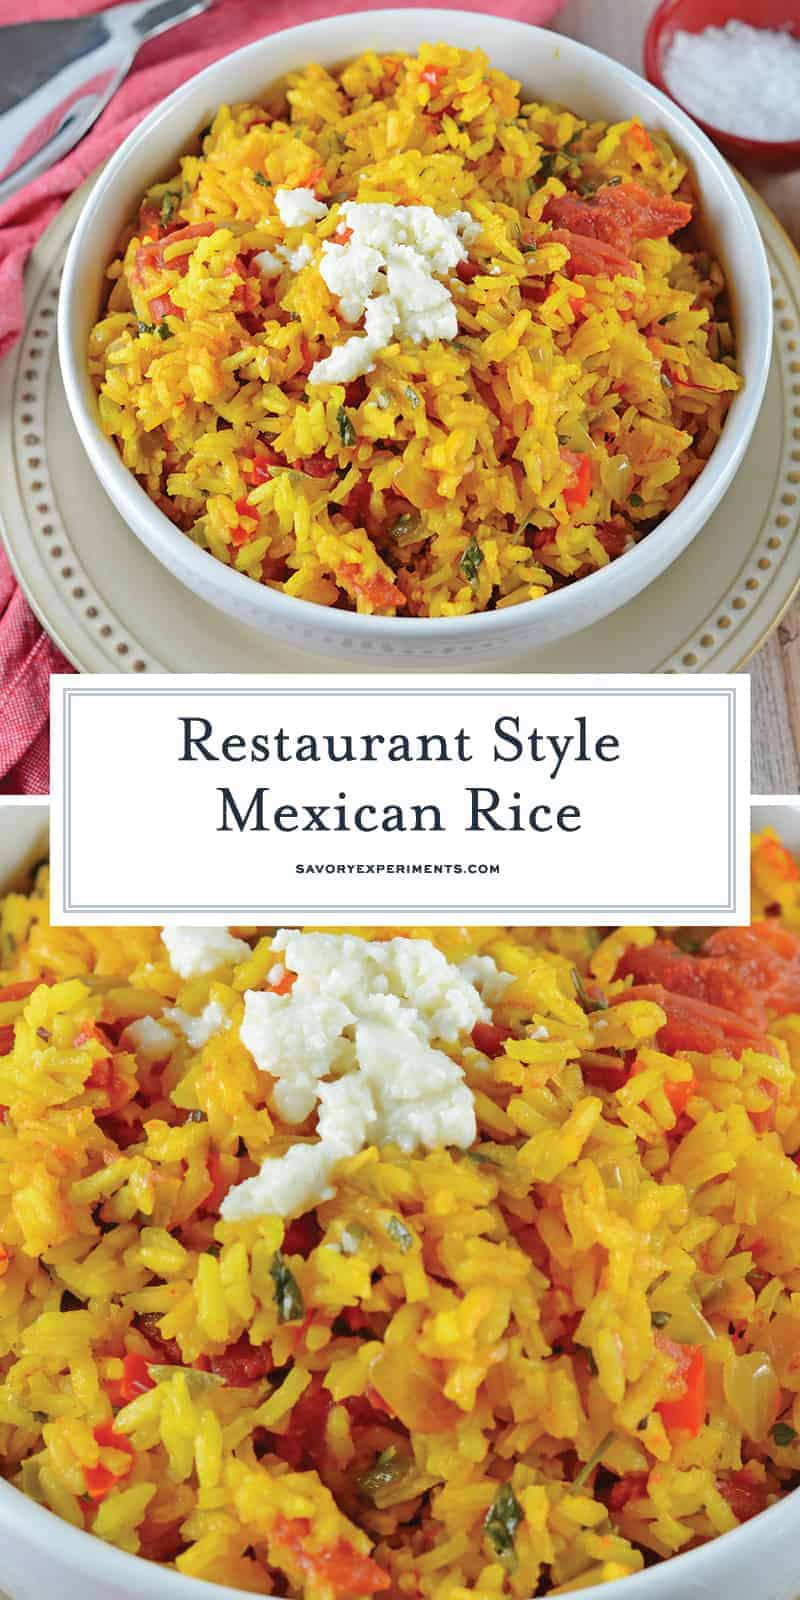 Restaurant Style Mexican Rice is a zesty red rice recipe packed full of vegetables and flavor using a delicious combination of red and green peppers, garlic, onions, tomatoes, chiles, and cilantro! #mexicanricerecipe #homemademexicanrice #yellowrice www.savoryexperiments.com